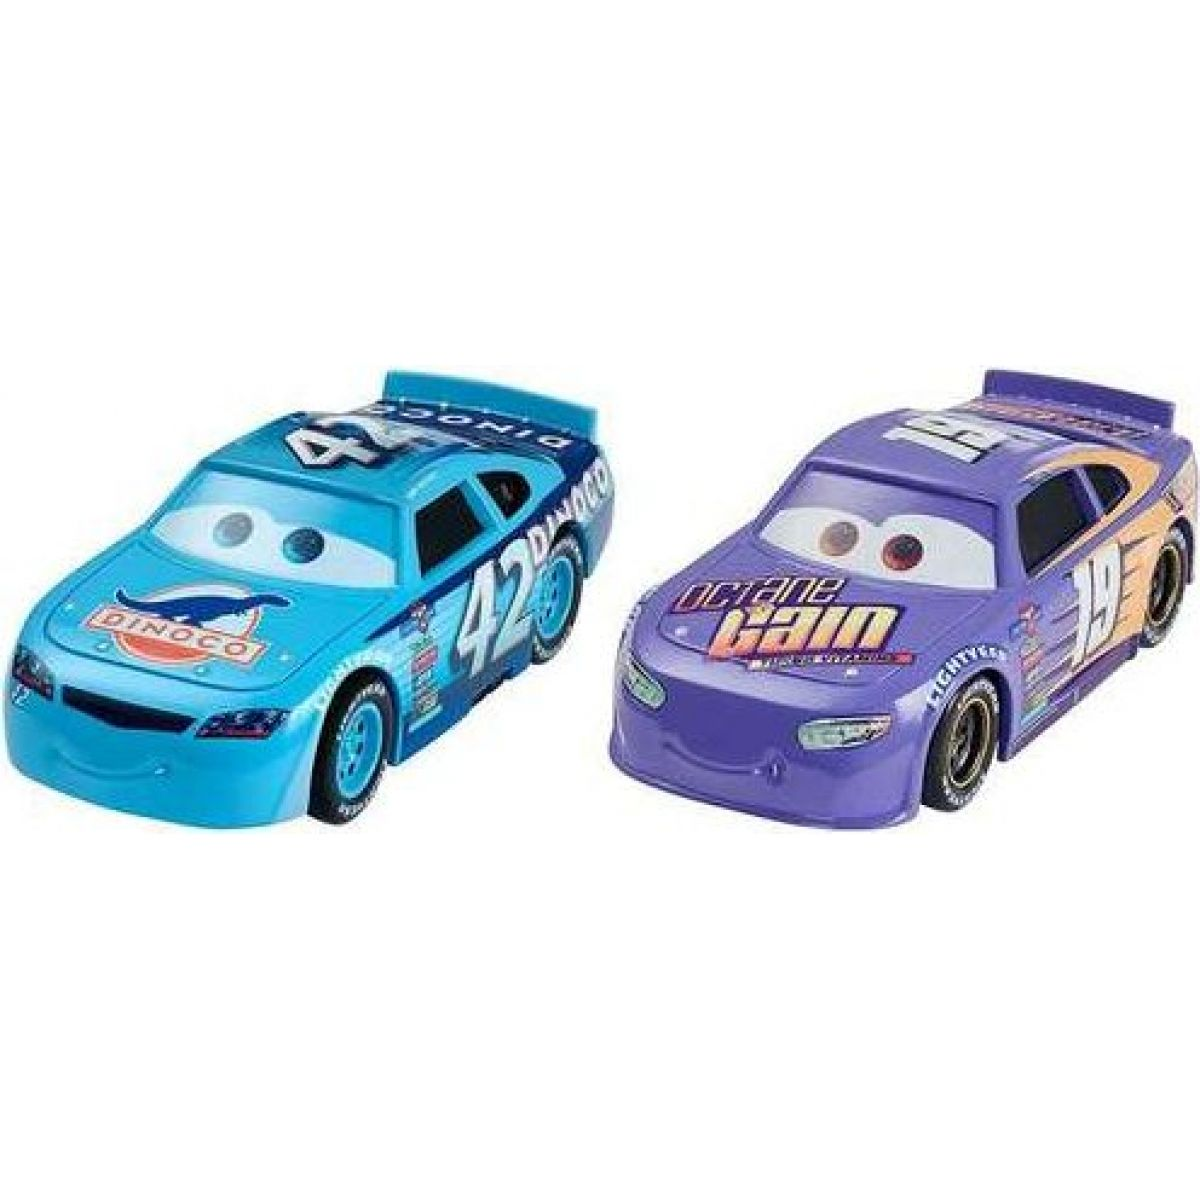 Mattel Cars 3 auta 2 ks Bobby Swift